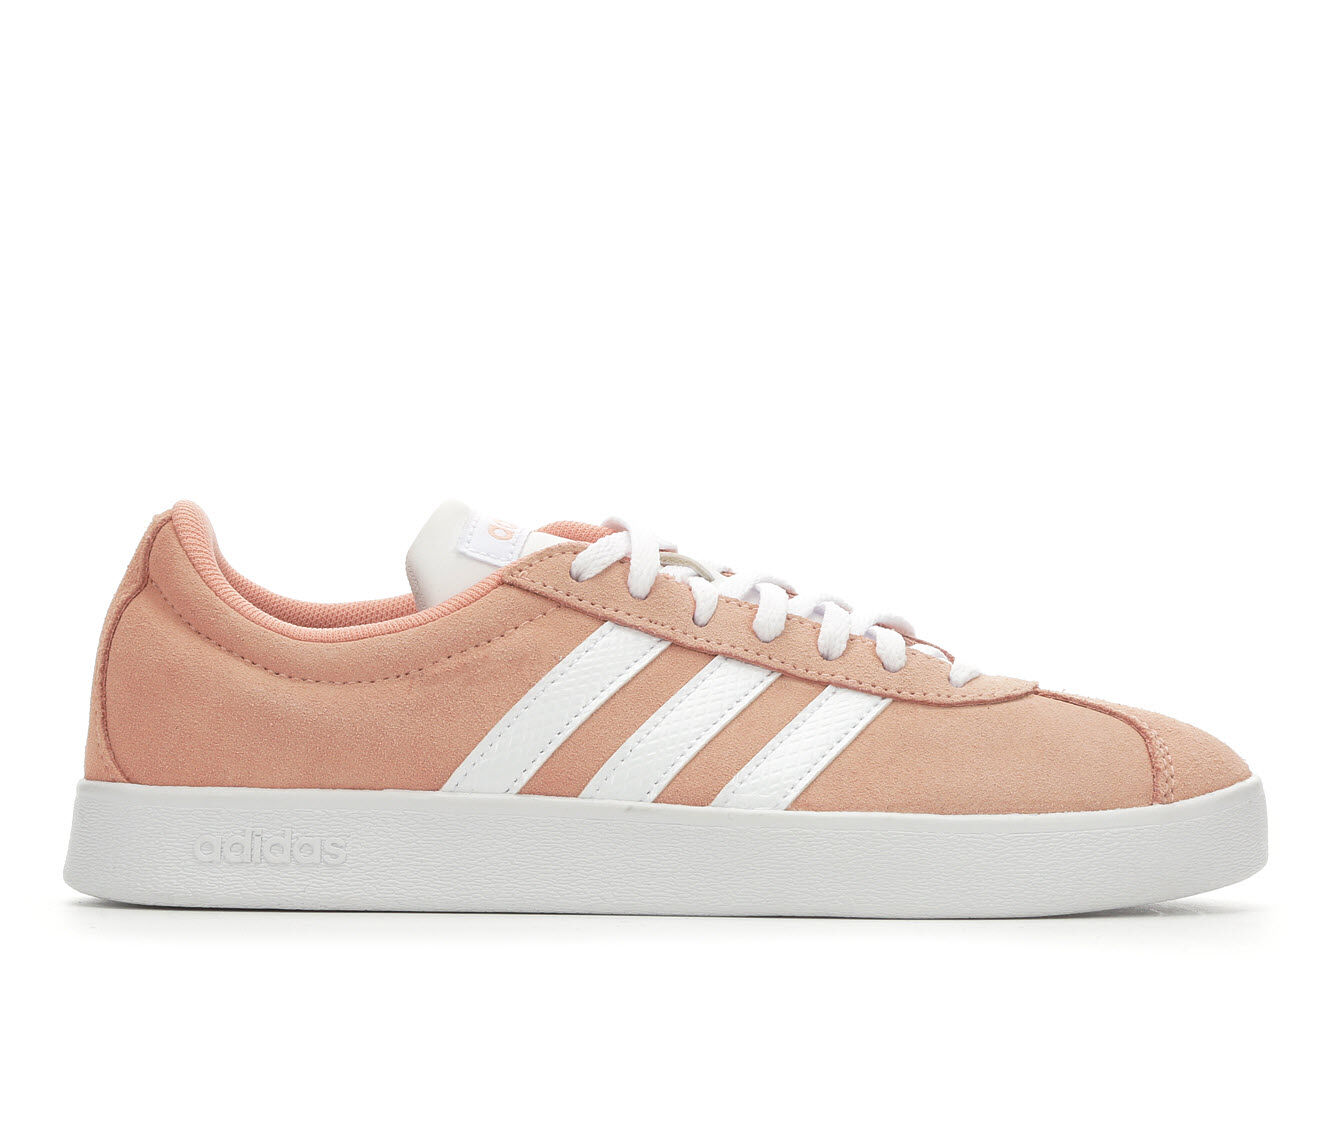 Women's Adidas VL Court 2.0 Tennis Shoes Pink/White/Gry